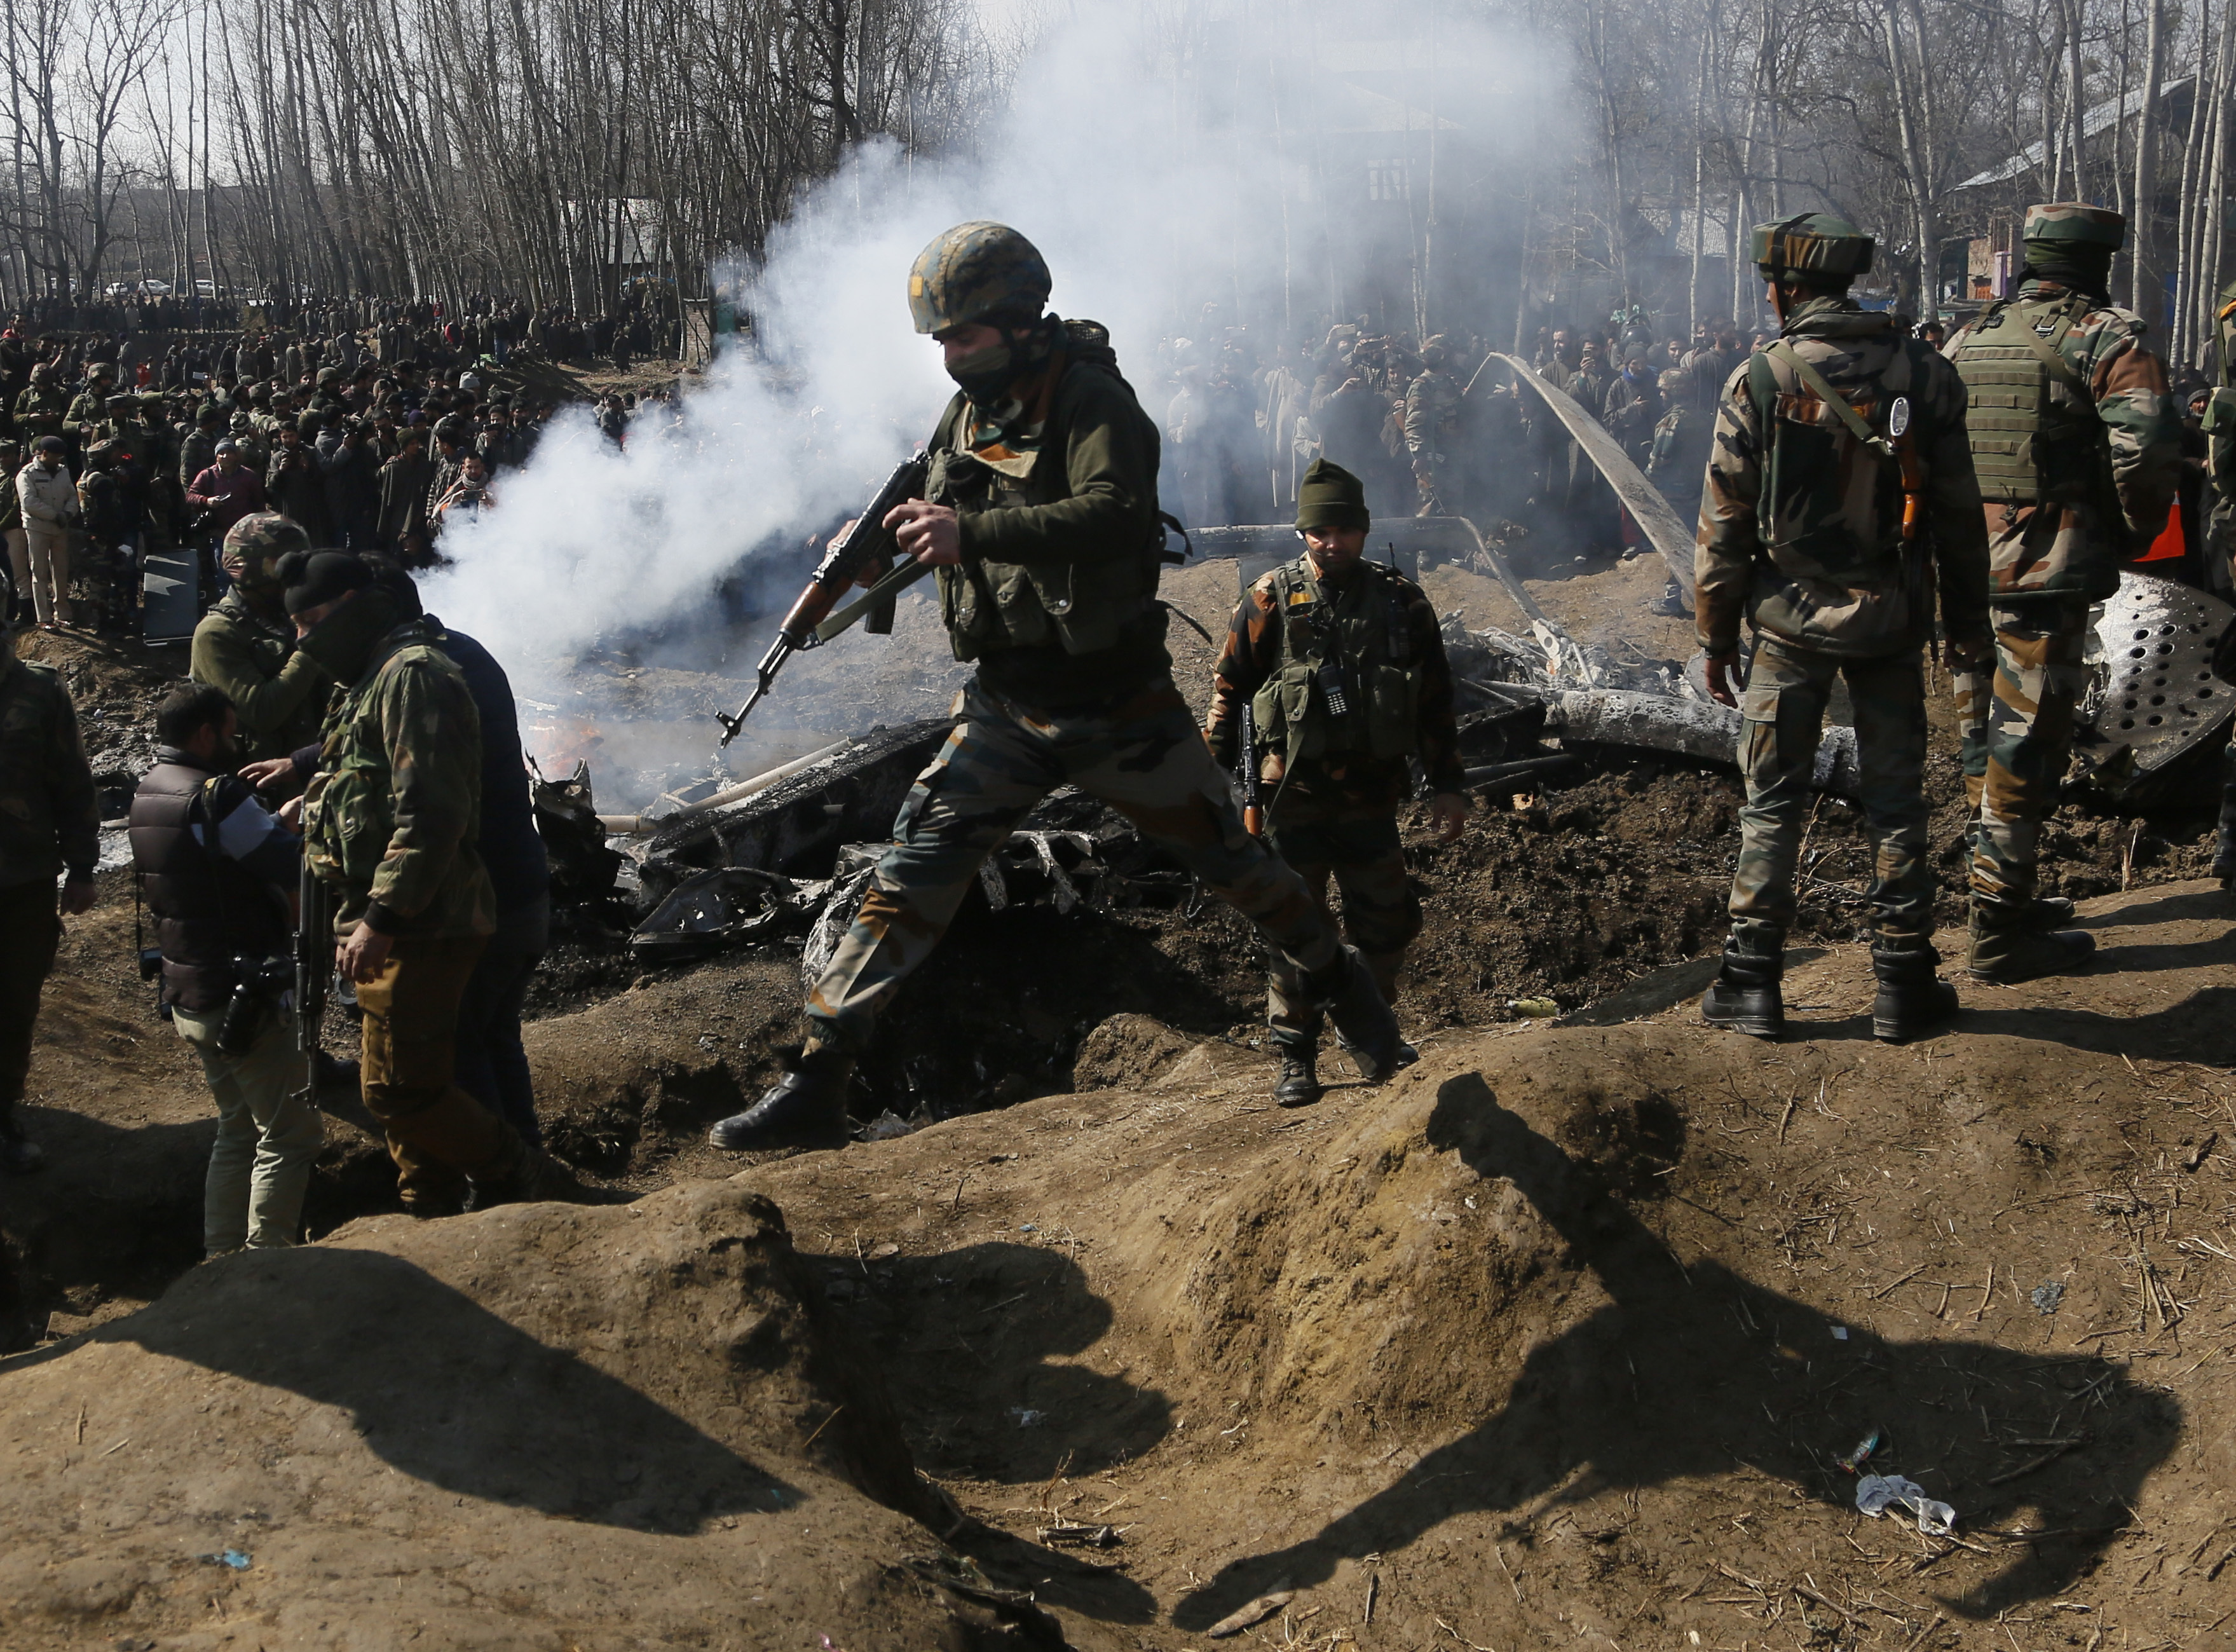 Indian army soldiers arrive near the wreckage of an Indian aircraft after it crashed in Budgam area, outskirts of Srinagar, Indian controlled Kashmir, Wednesday, Feb.27, 2019. (AP Photo/Mukhtar Khan)